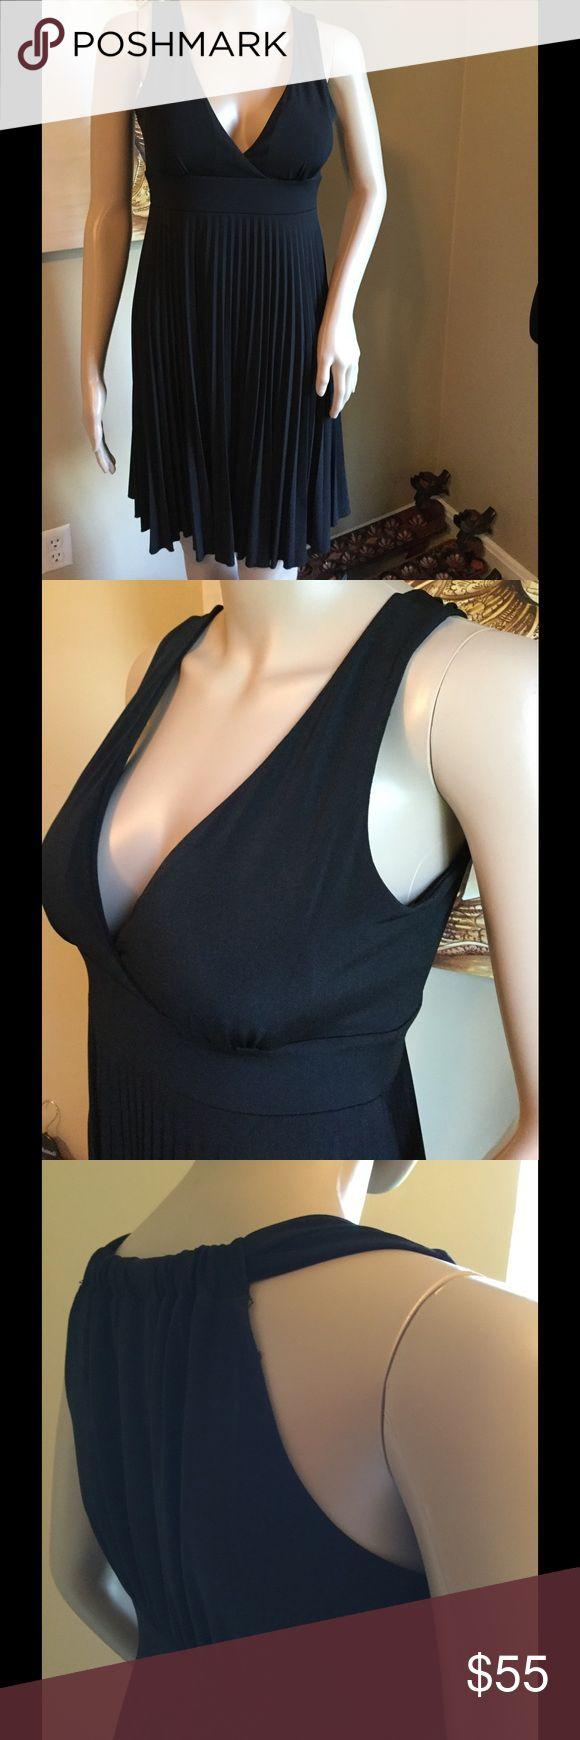 Dress Like new. Only wore once. Really nice dress. 95%polyester. Come from smoke free home. I can combine shipping with other items. Max & Cleo Dresses Mini